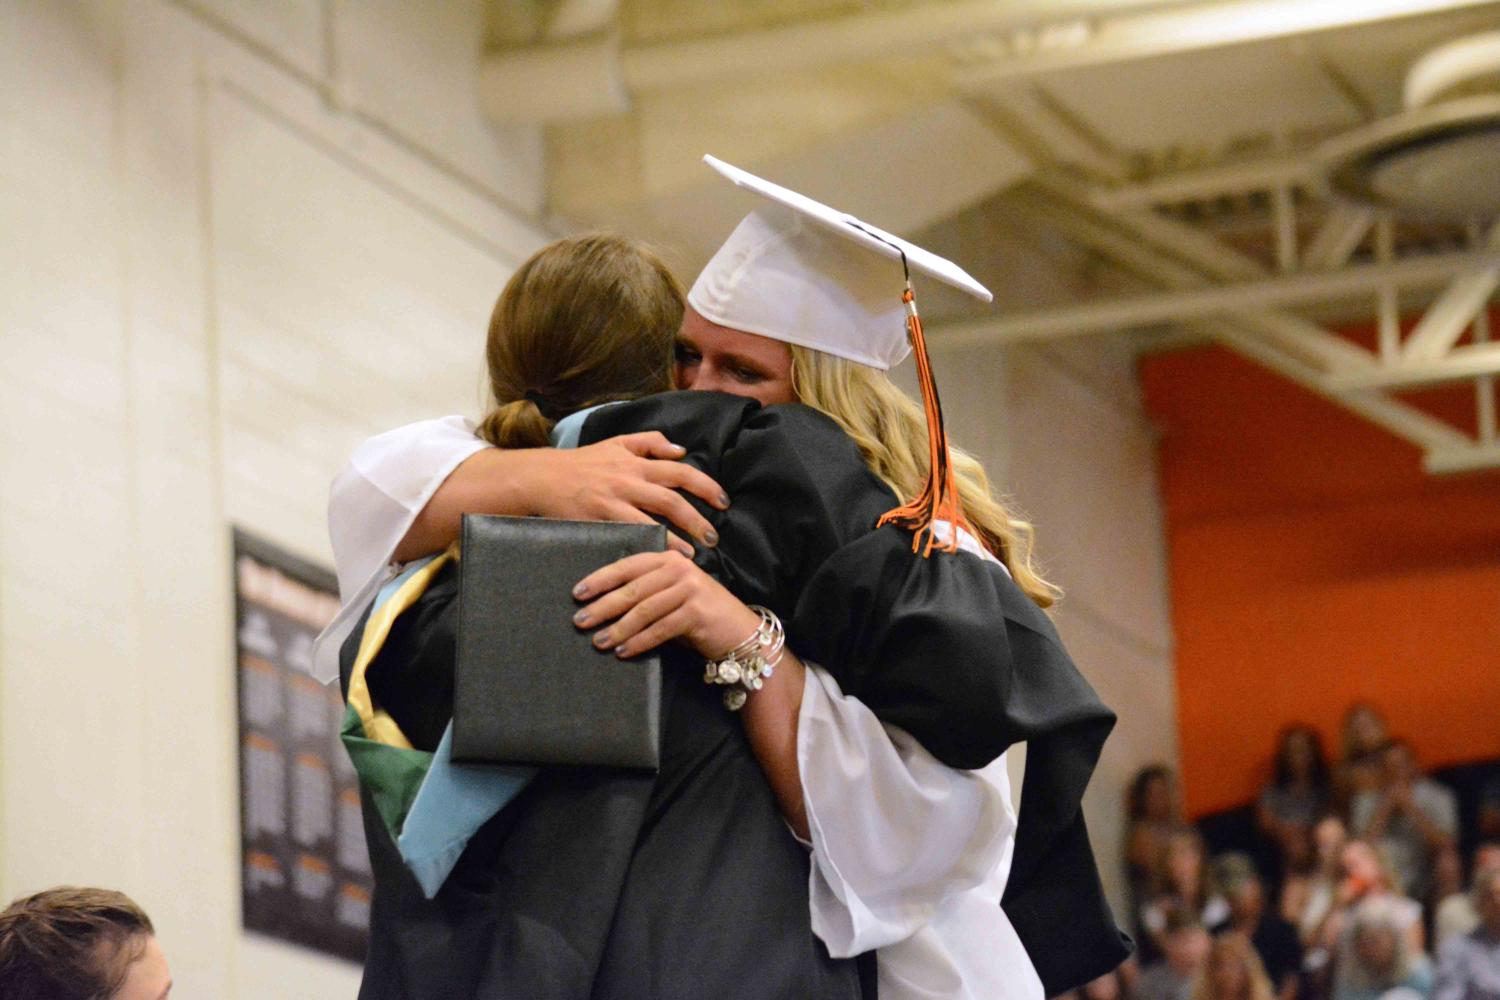 After receiving her diploma, senior Maddie Welch hugs her mom as they both tear up. This years graduating class had a total of 272 seniors who were apart of the graduation ceremony on Sunday.